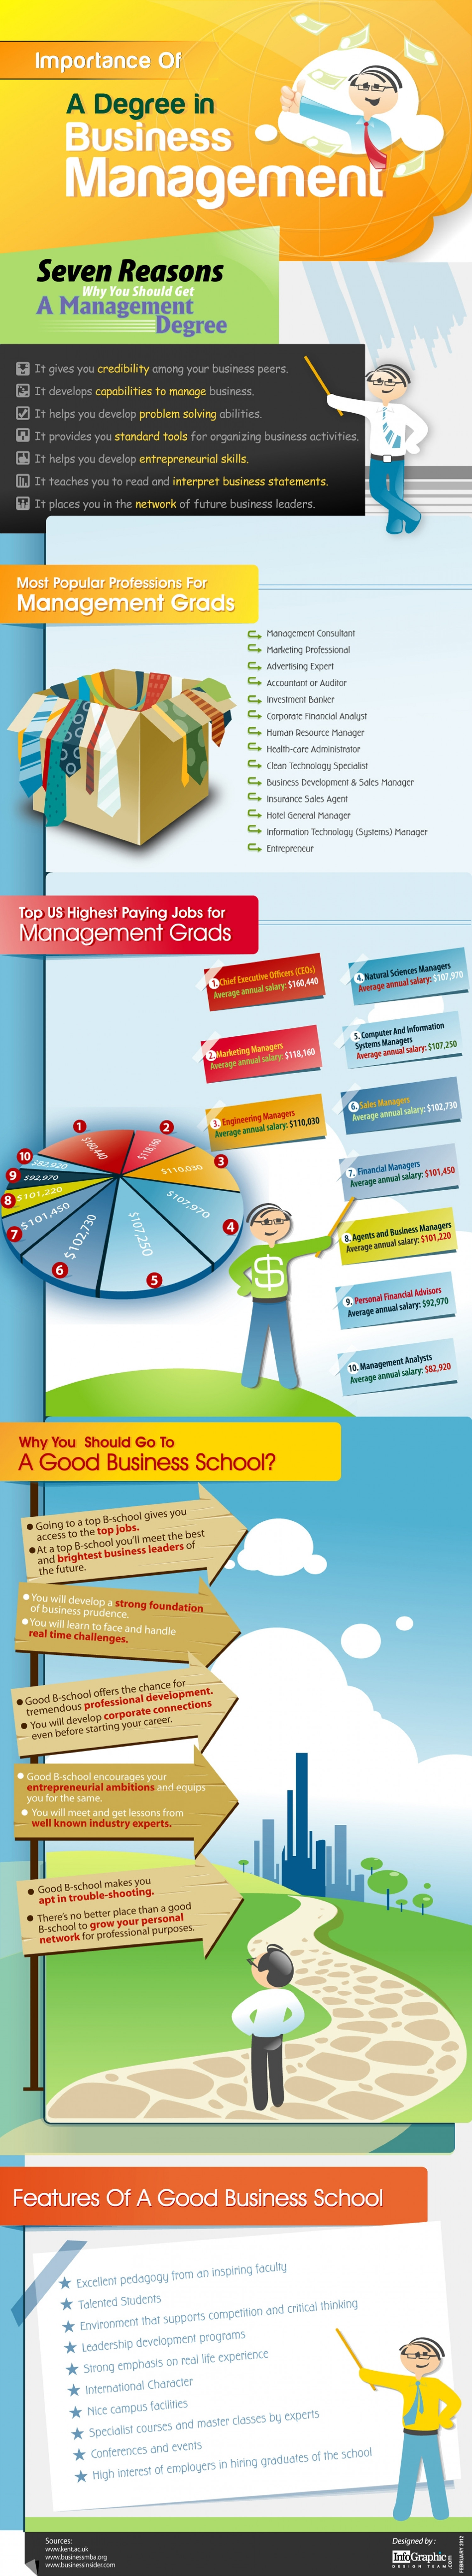 Importance of Business Management Degree Infographic